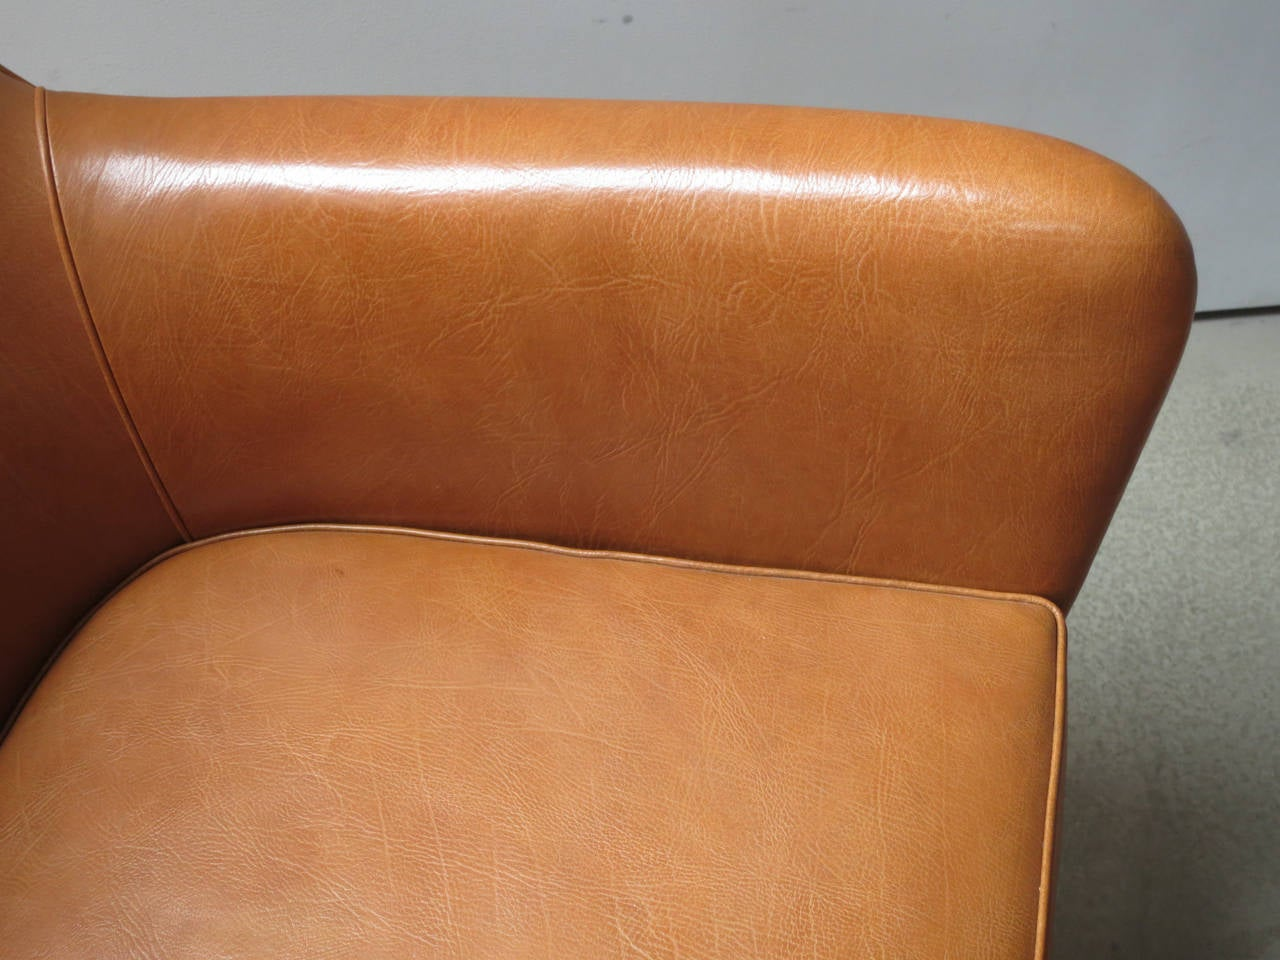 Pair of 1940s Lounge Chairs in Nigerian Leather by Ole Wanscher 1